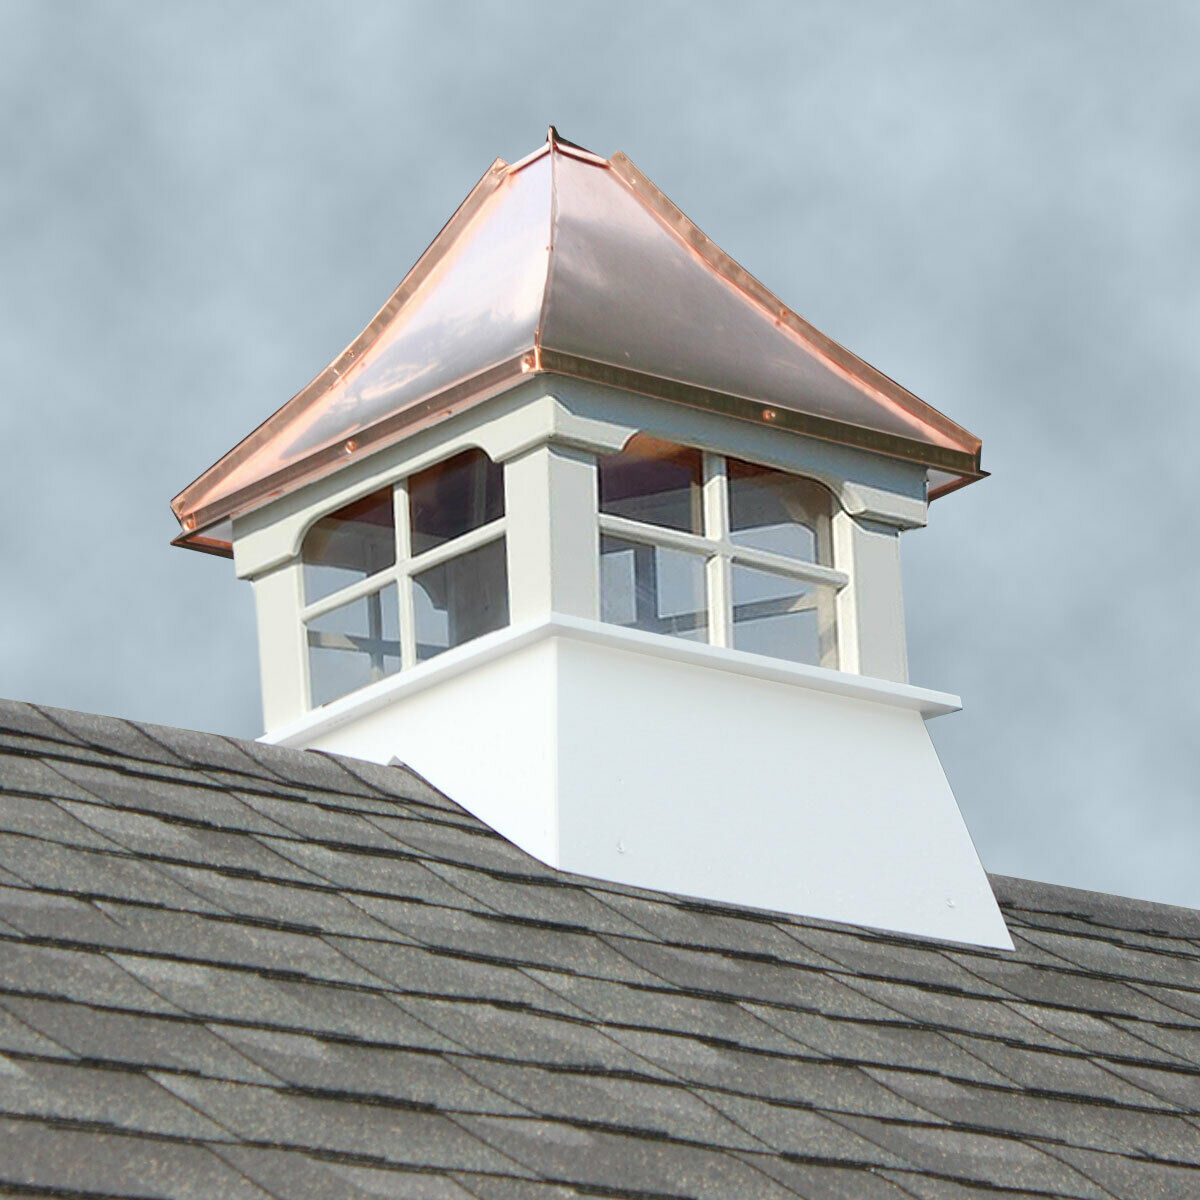 Accentua Rainier Vinyl Cupola With Copper Roof 20 In